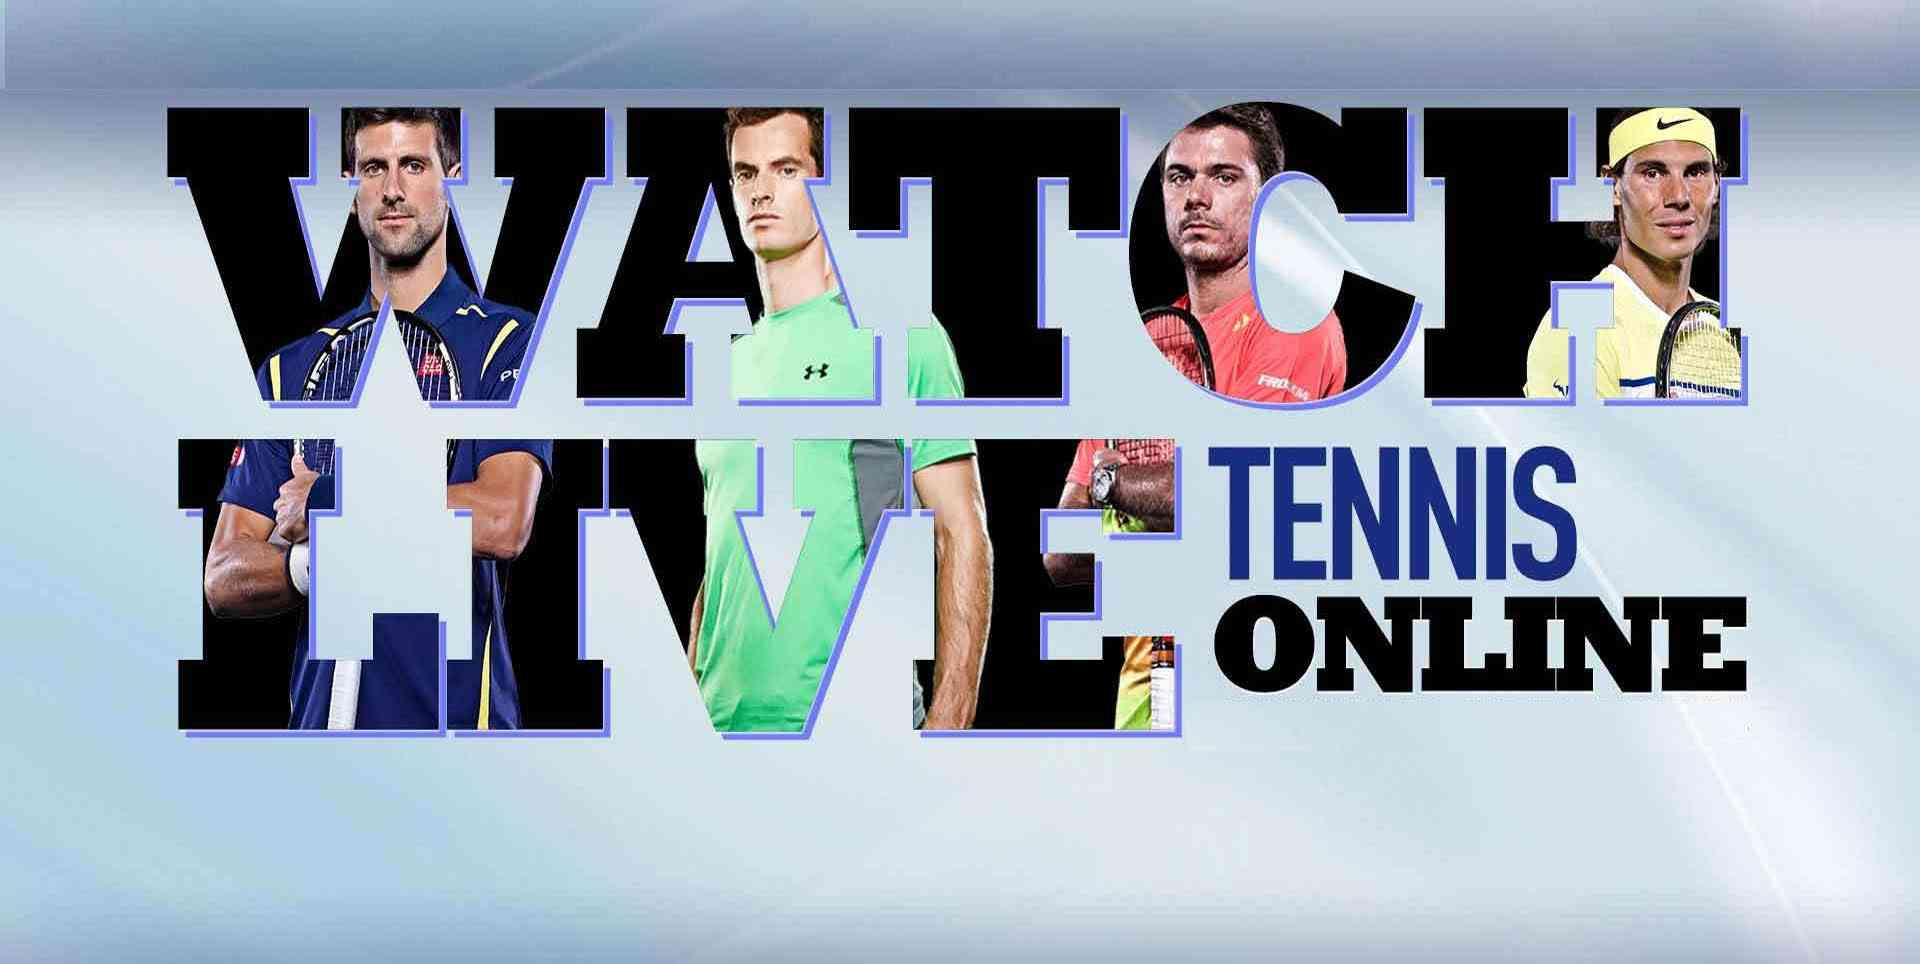 watch-2nd-round-k.-anderson-vs-e.-roger-vasselin-live